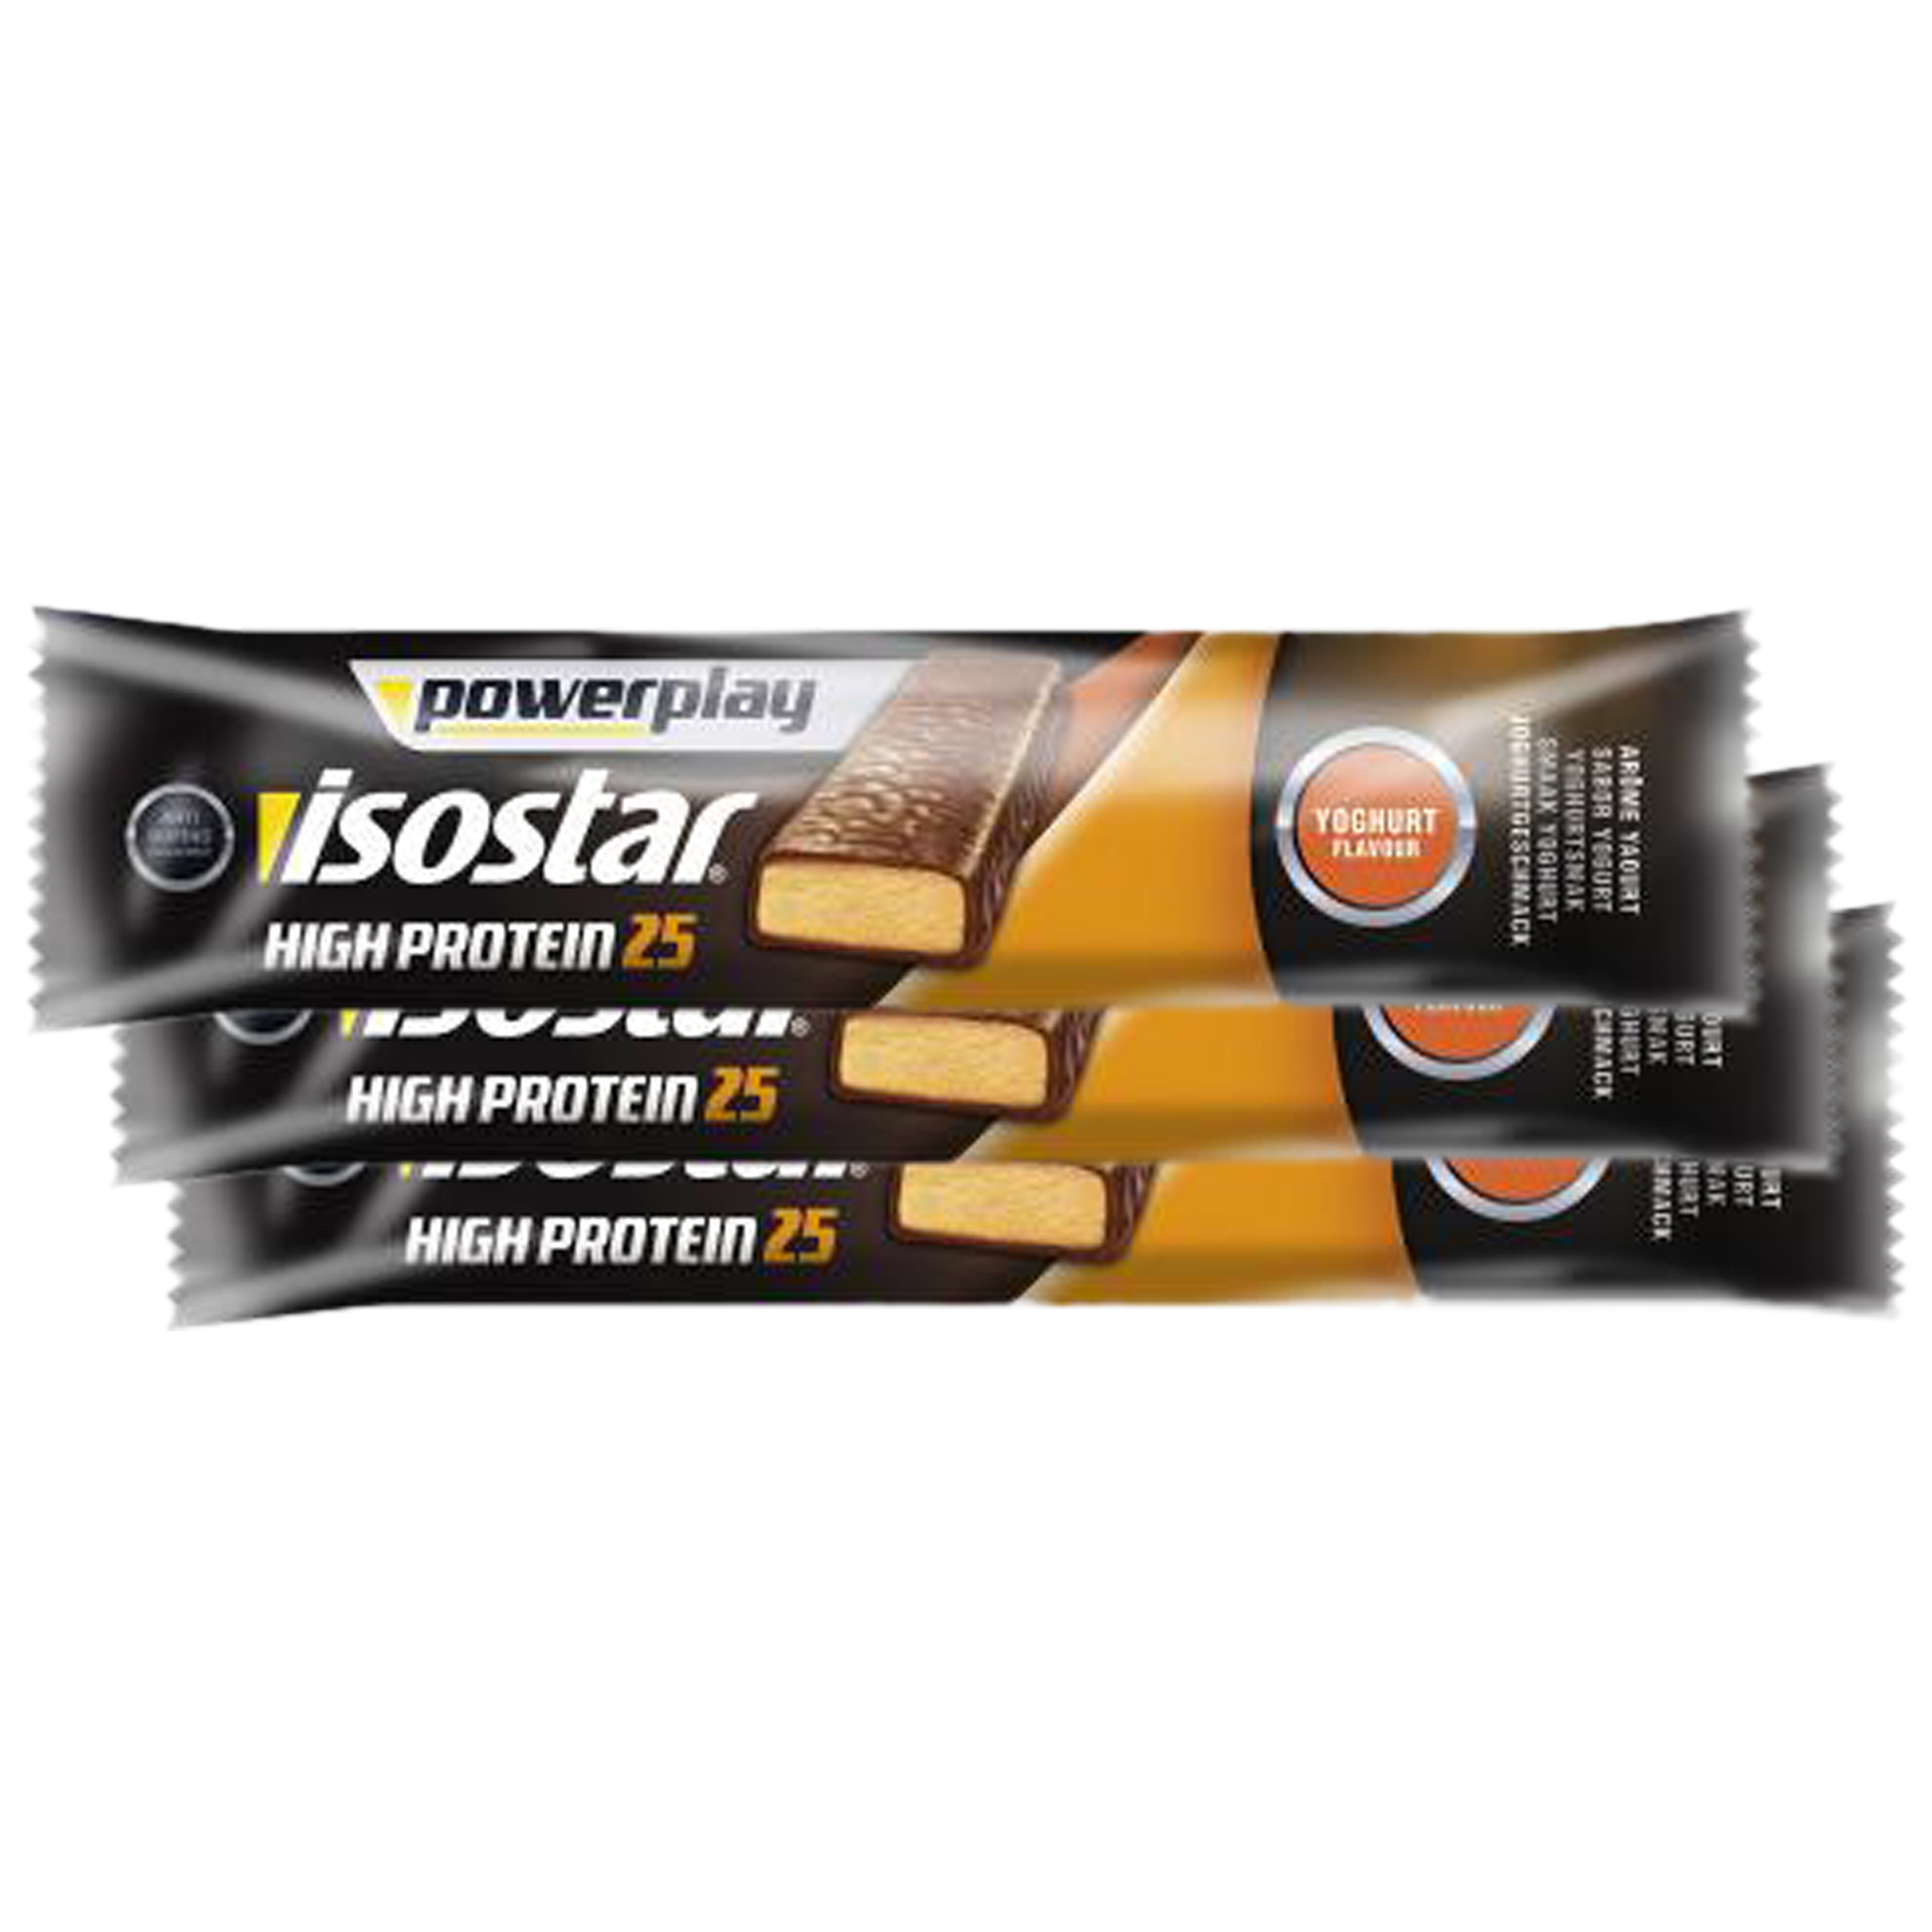 High Protein 25 Powerplay Isostar yaourt&fruits 35 g – 3 barres